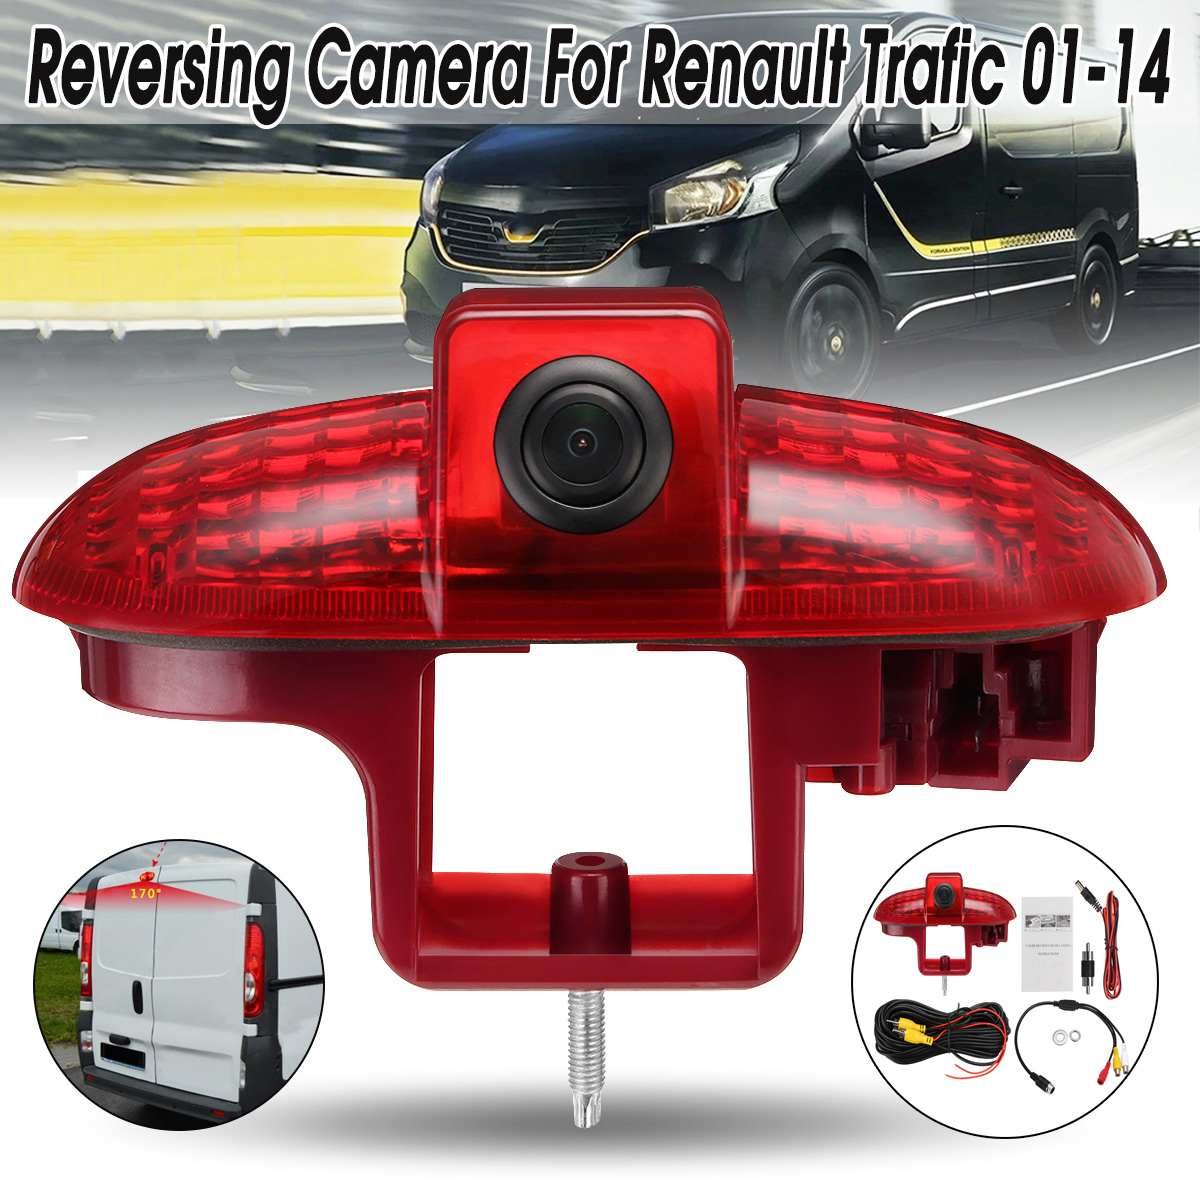 CCD HD Auto Car Rear View Camera Reverse Backup LED Brake Light Night Vision For Renault Trafic 2001-2014 Trafic Vauxhall Vivaro